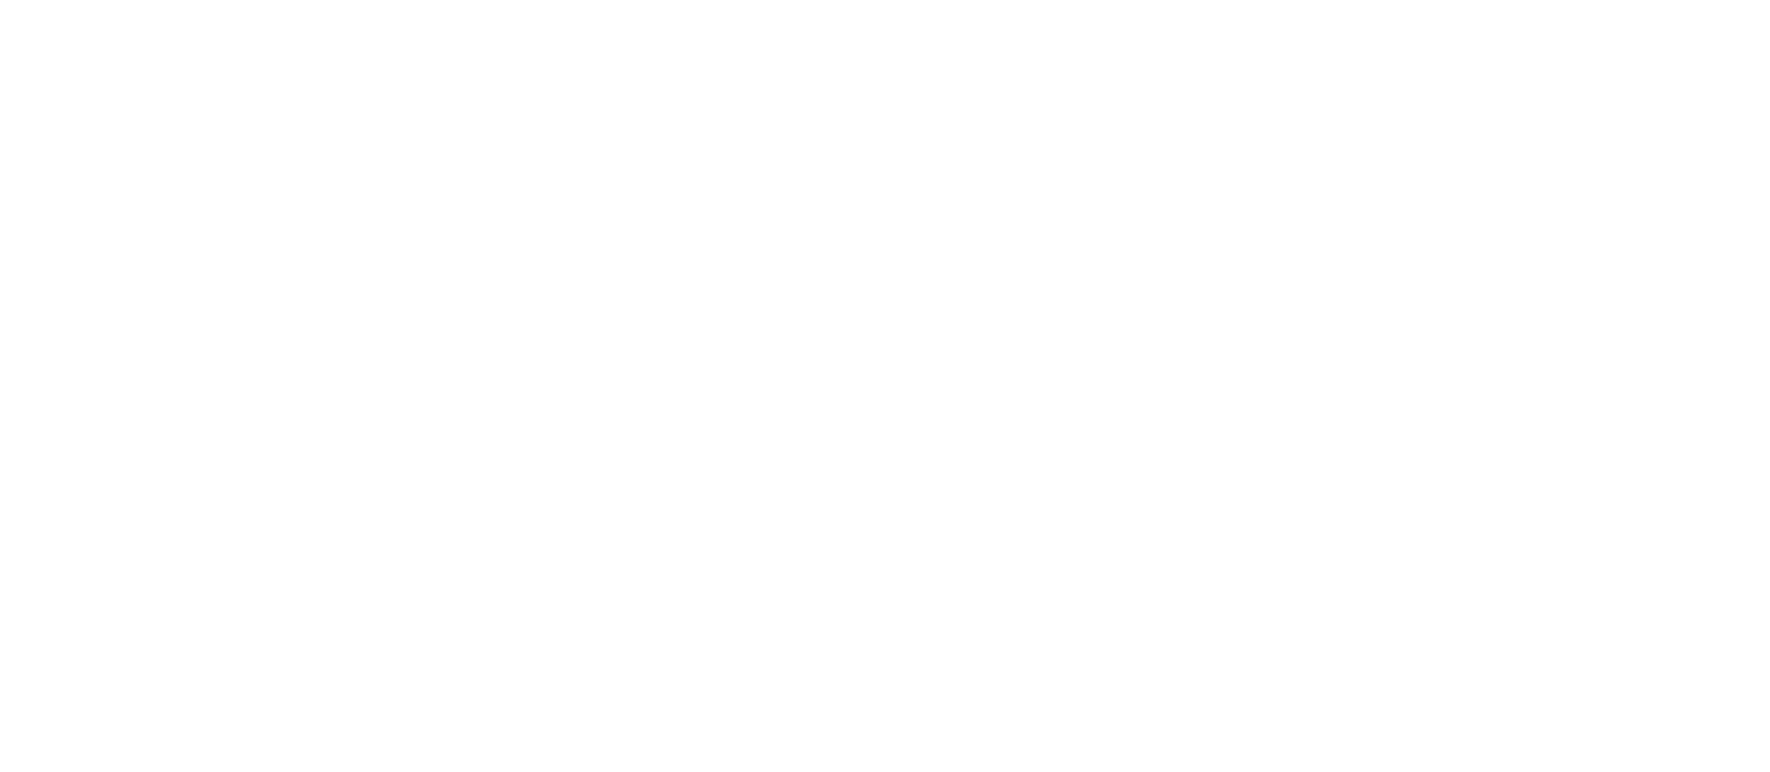 Don Cristobal 1492